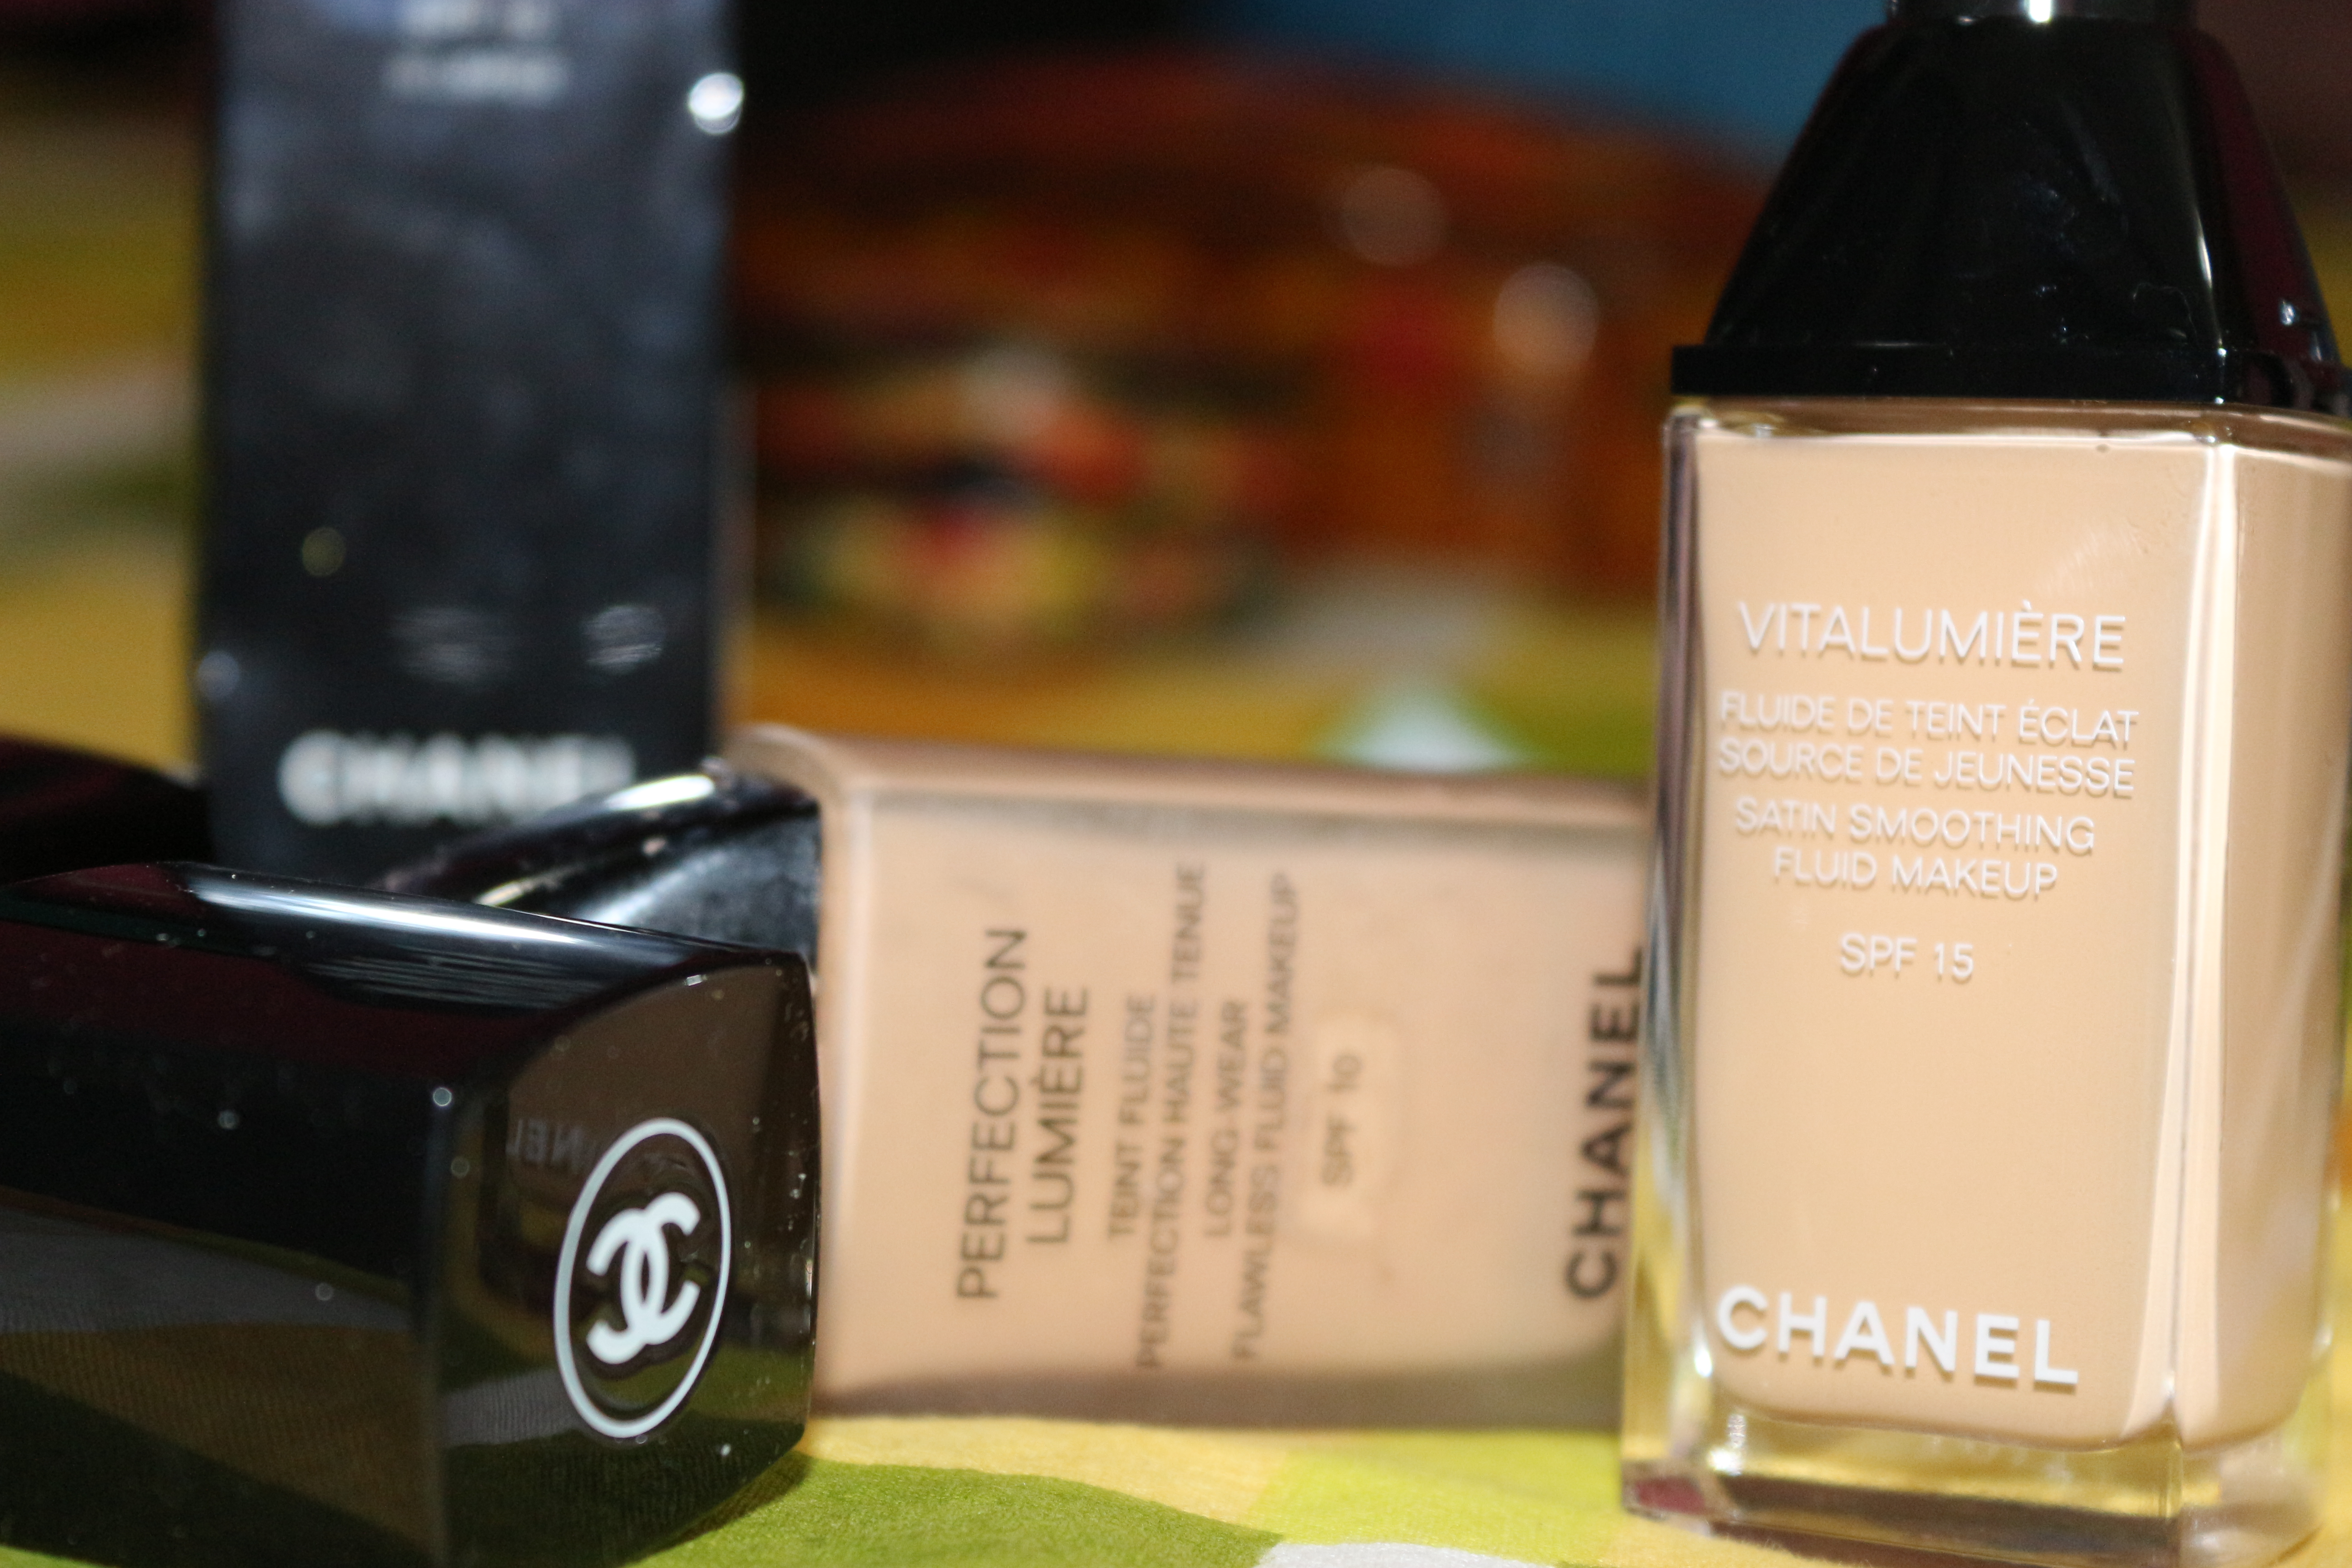 Chanel Foundations The Best Among The Best Foundations Girlandworld